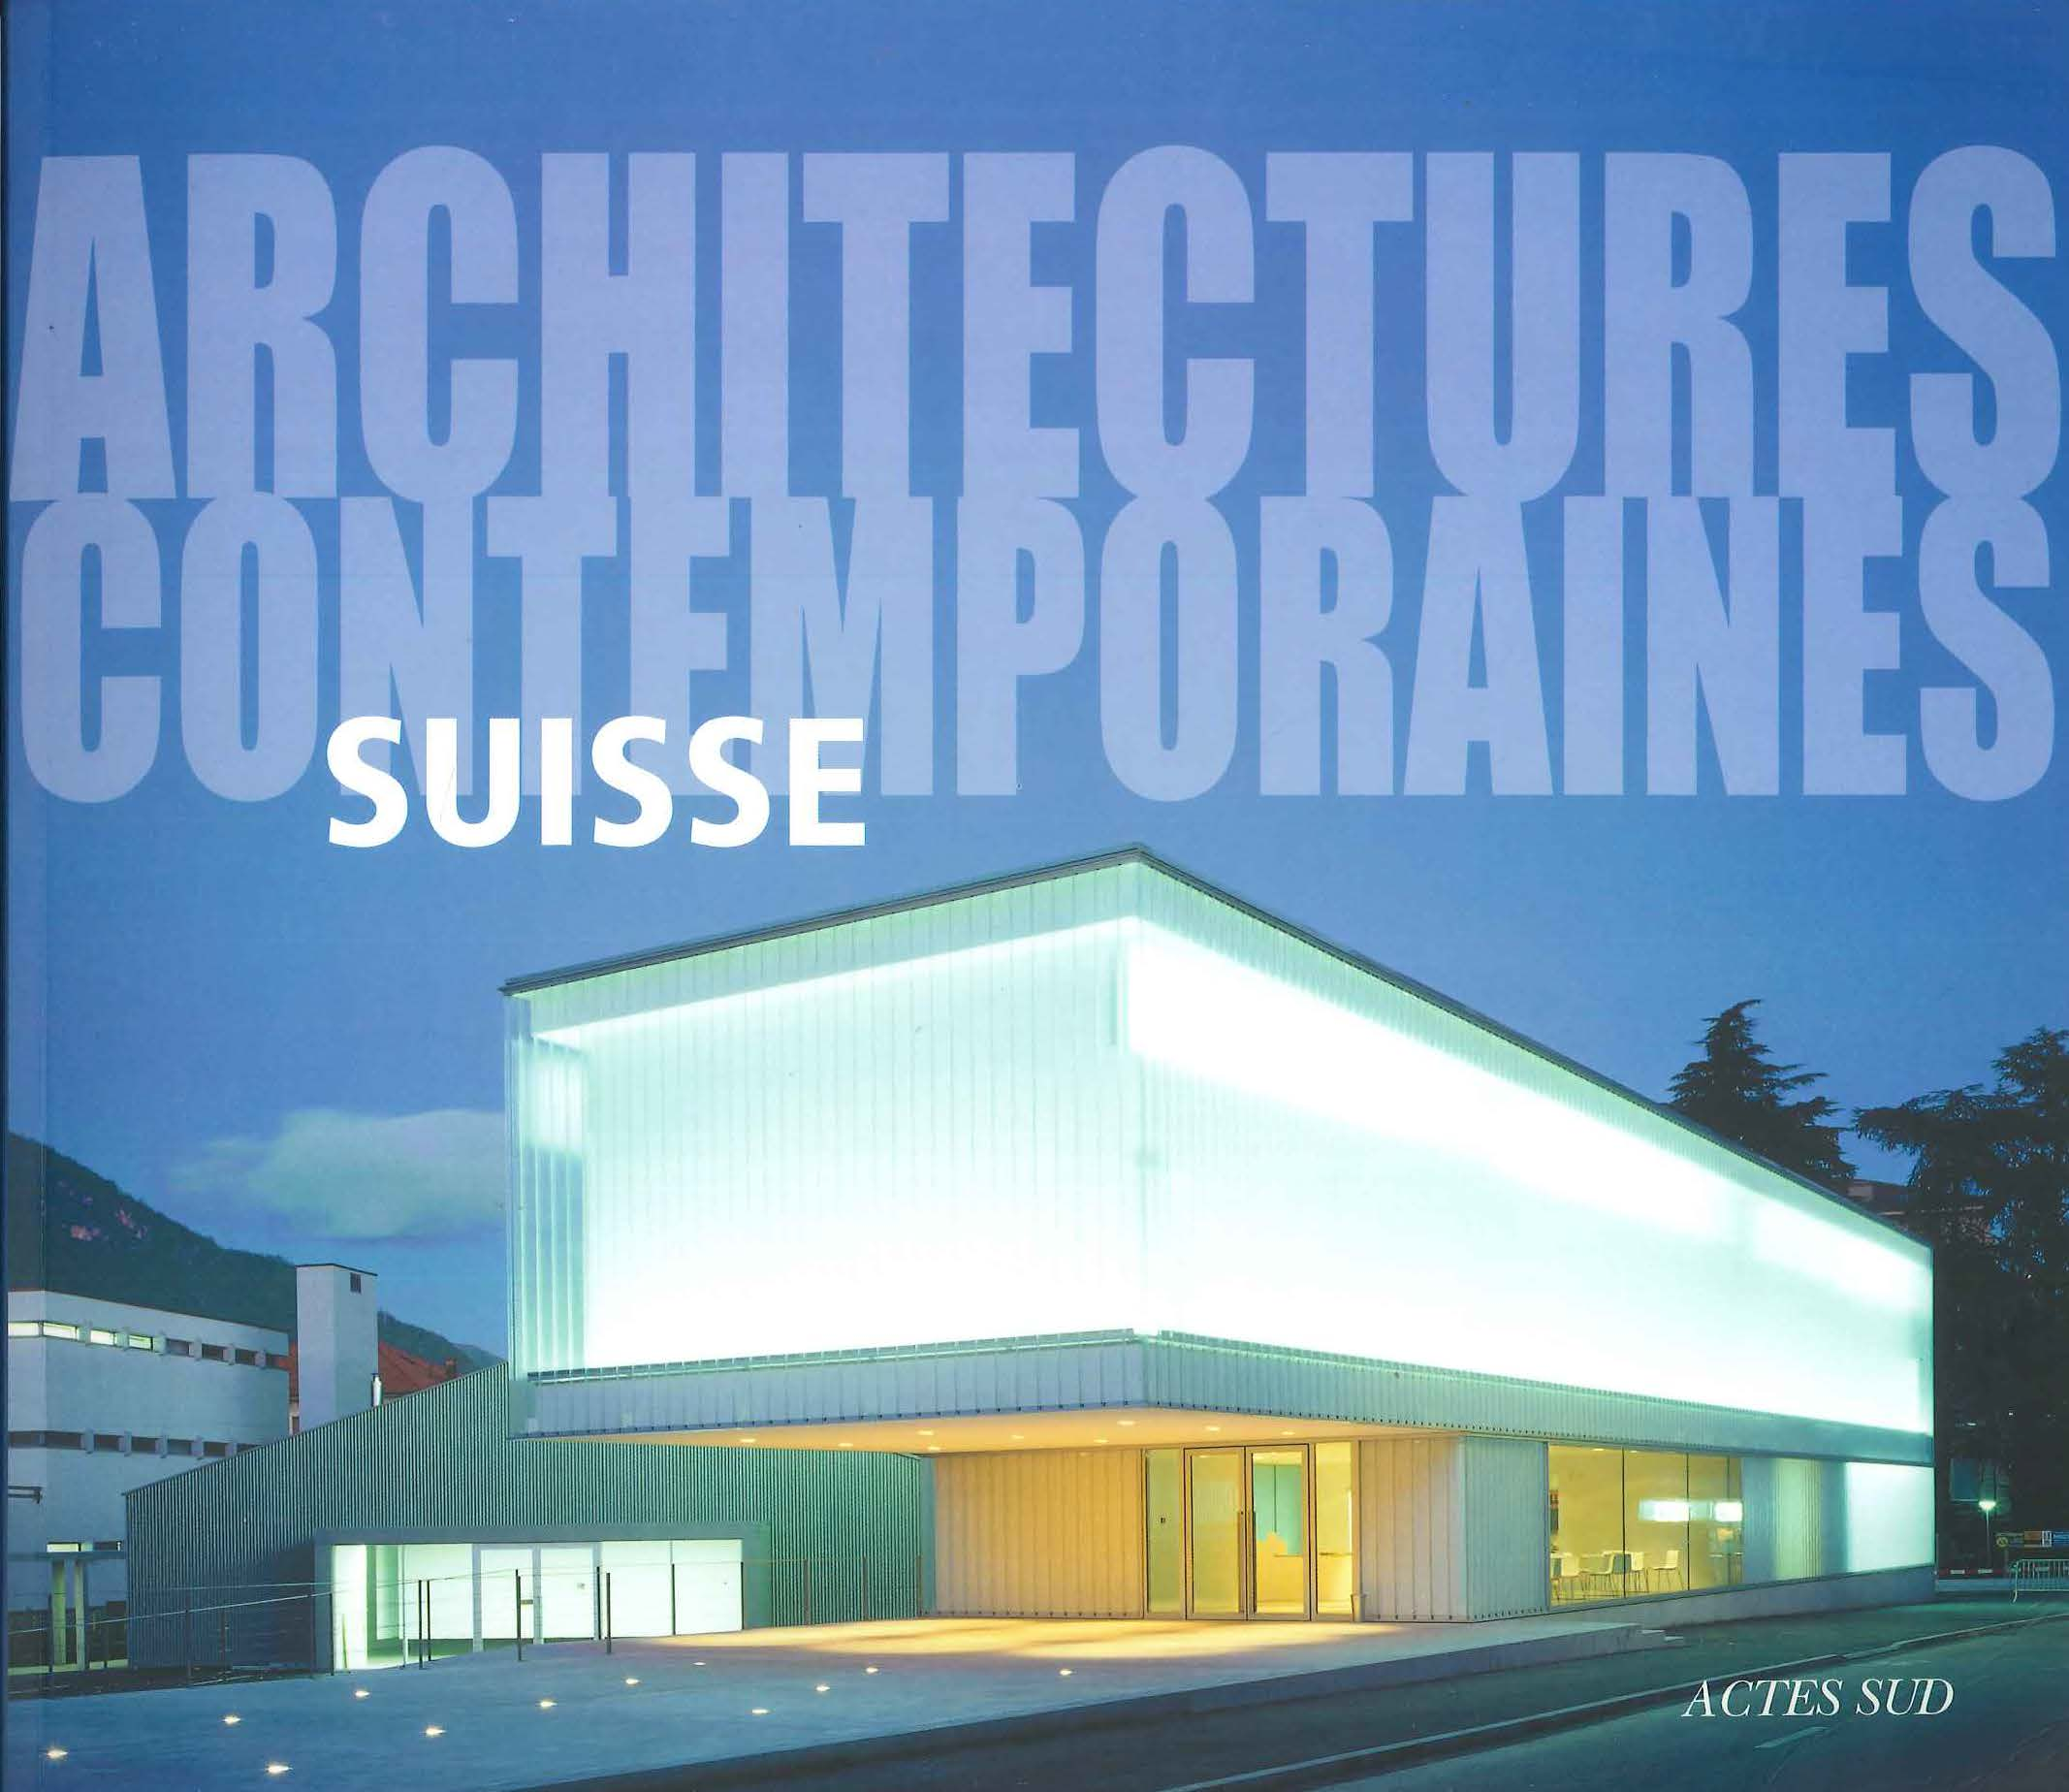 Architectures contemporaines -SUISSE